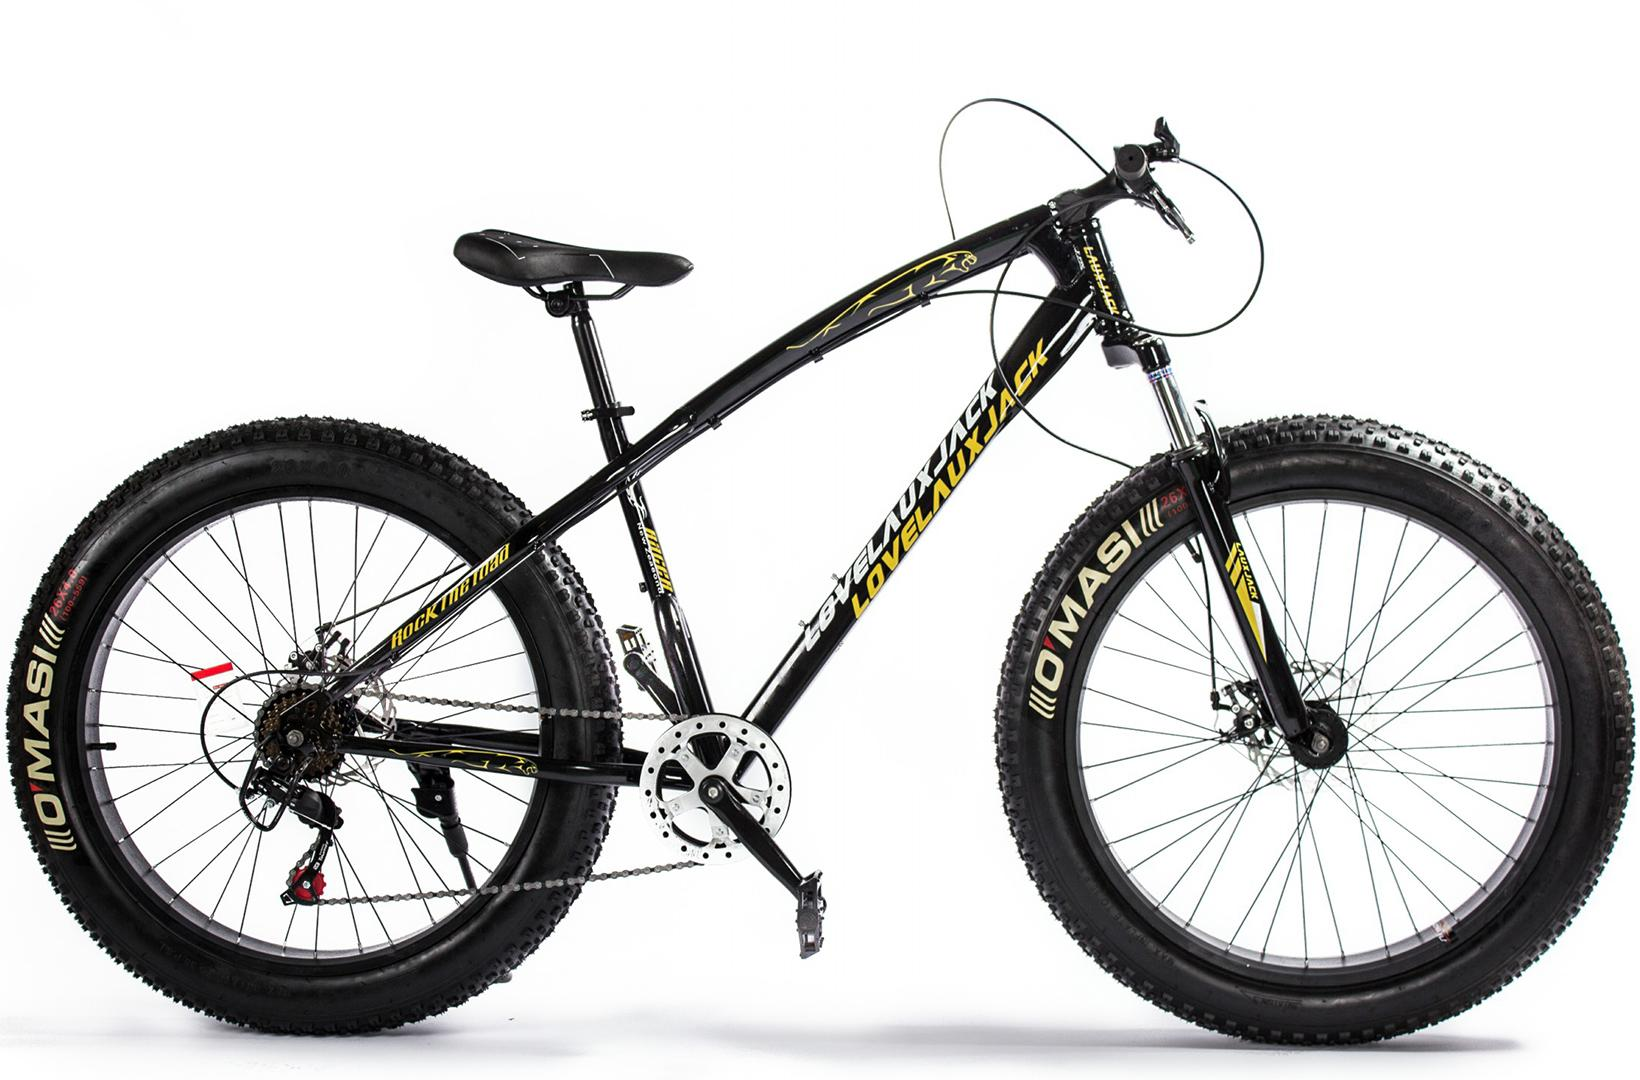 ВЕЛОСИПЕД FAT BIKE GREEN BIKE XS-010 D 26'